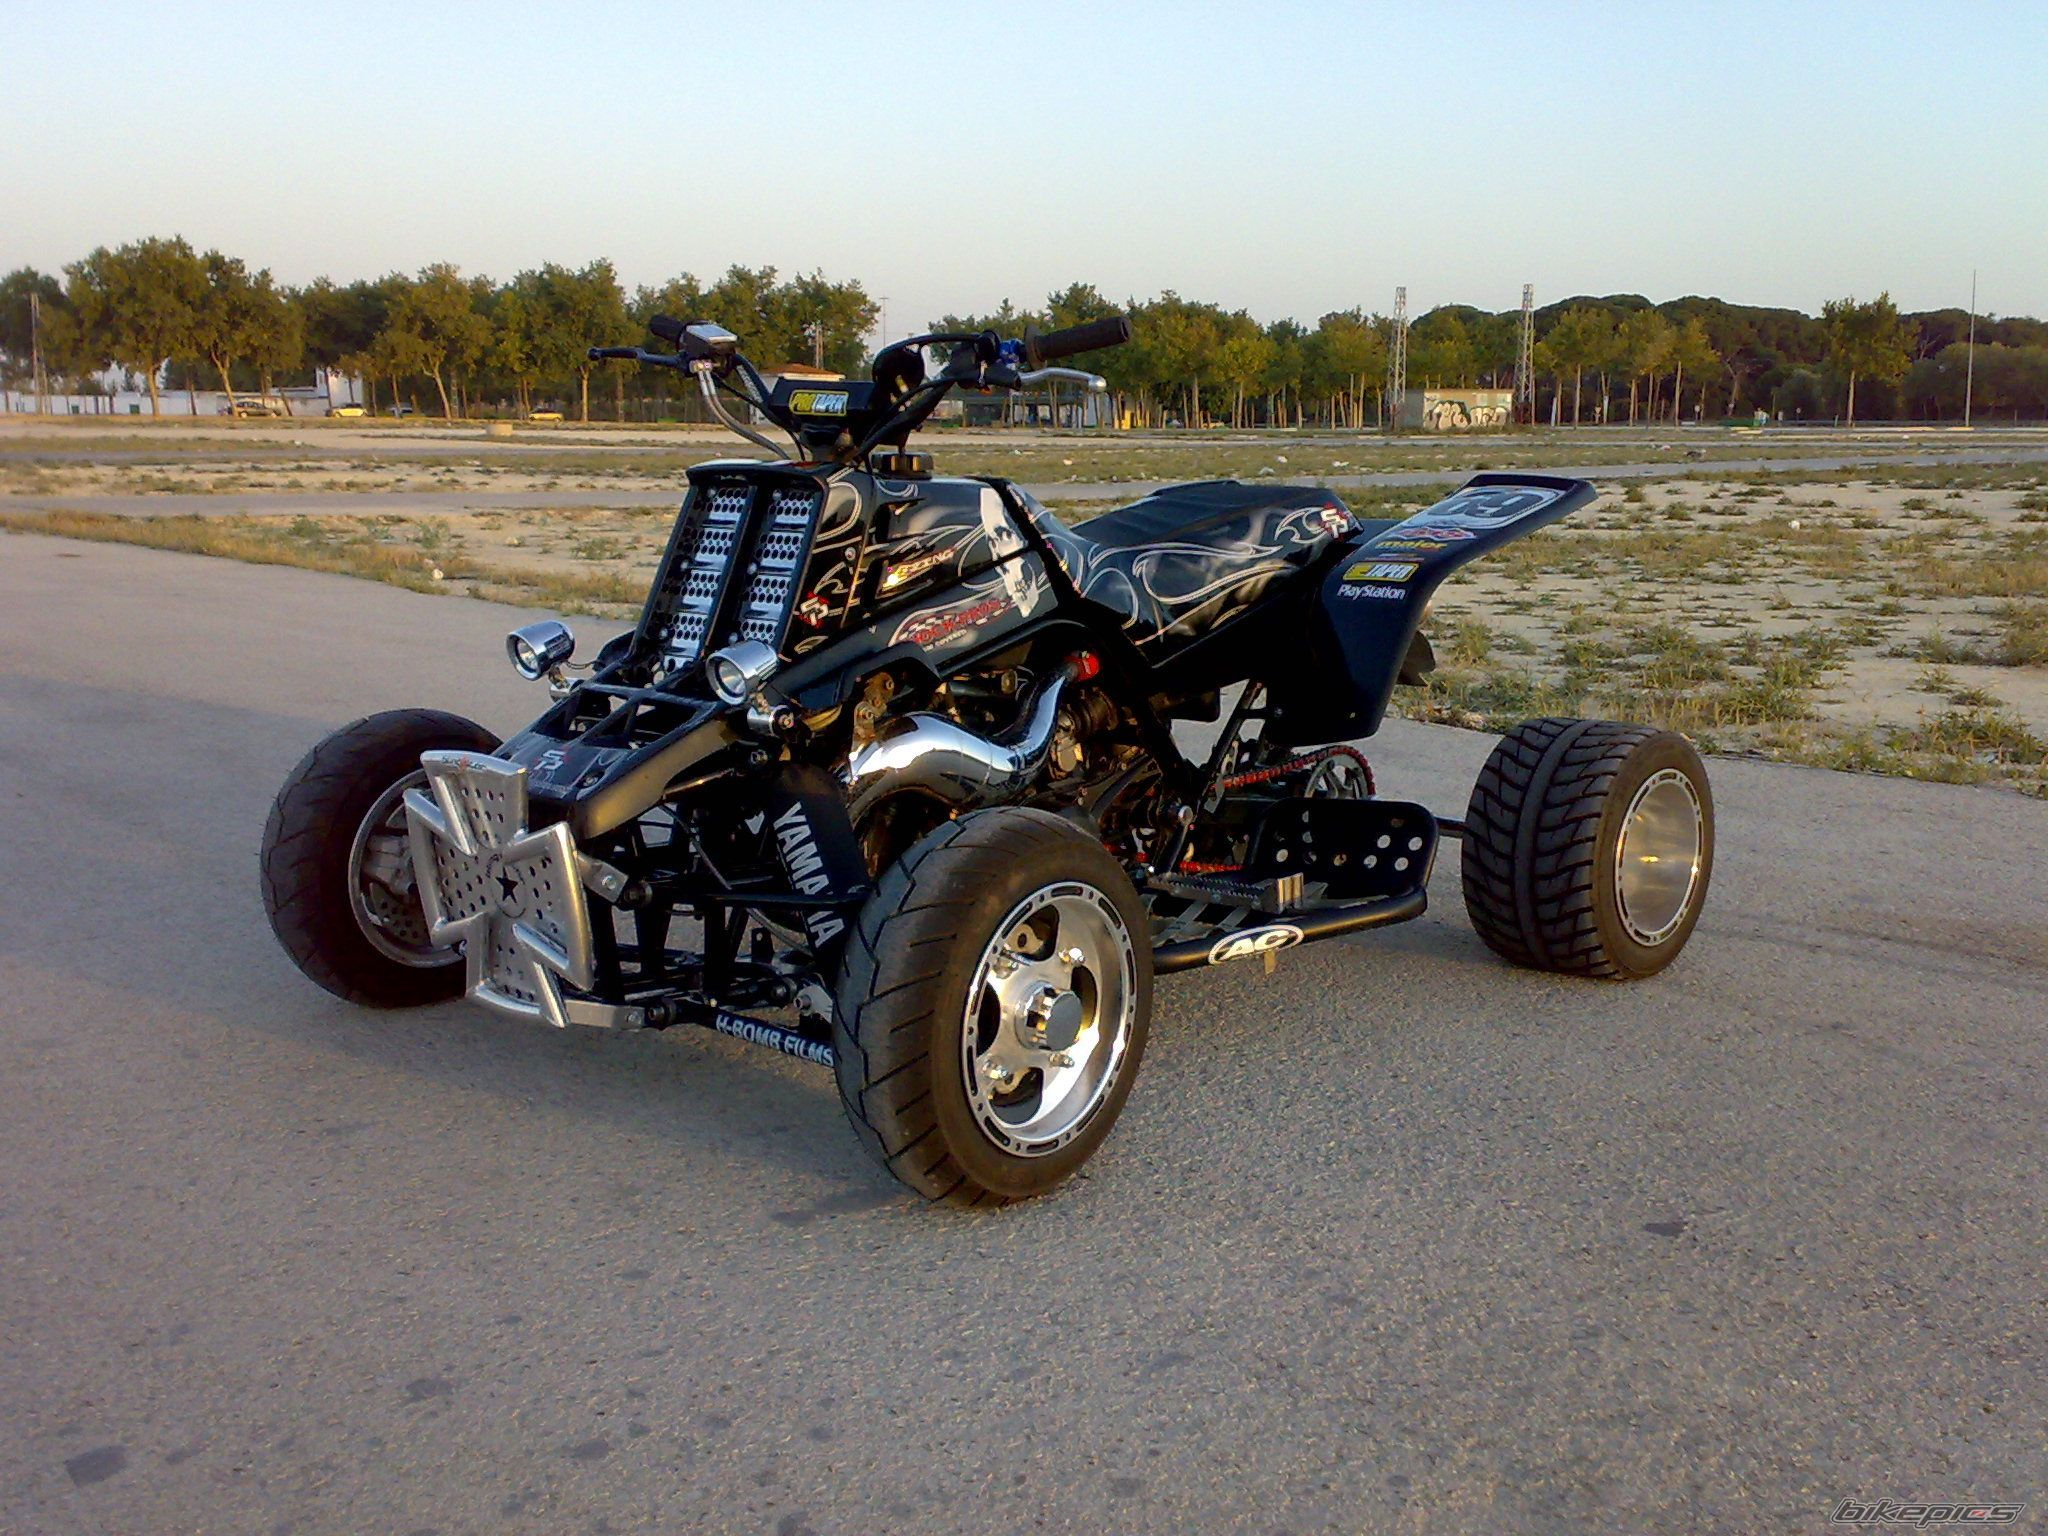 yamaha 350 banshee cars and motorbikes pinterest atv dirt biking and cars. Black Bedroom Furniture Sets. Home Design Ideas